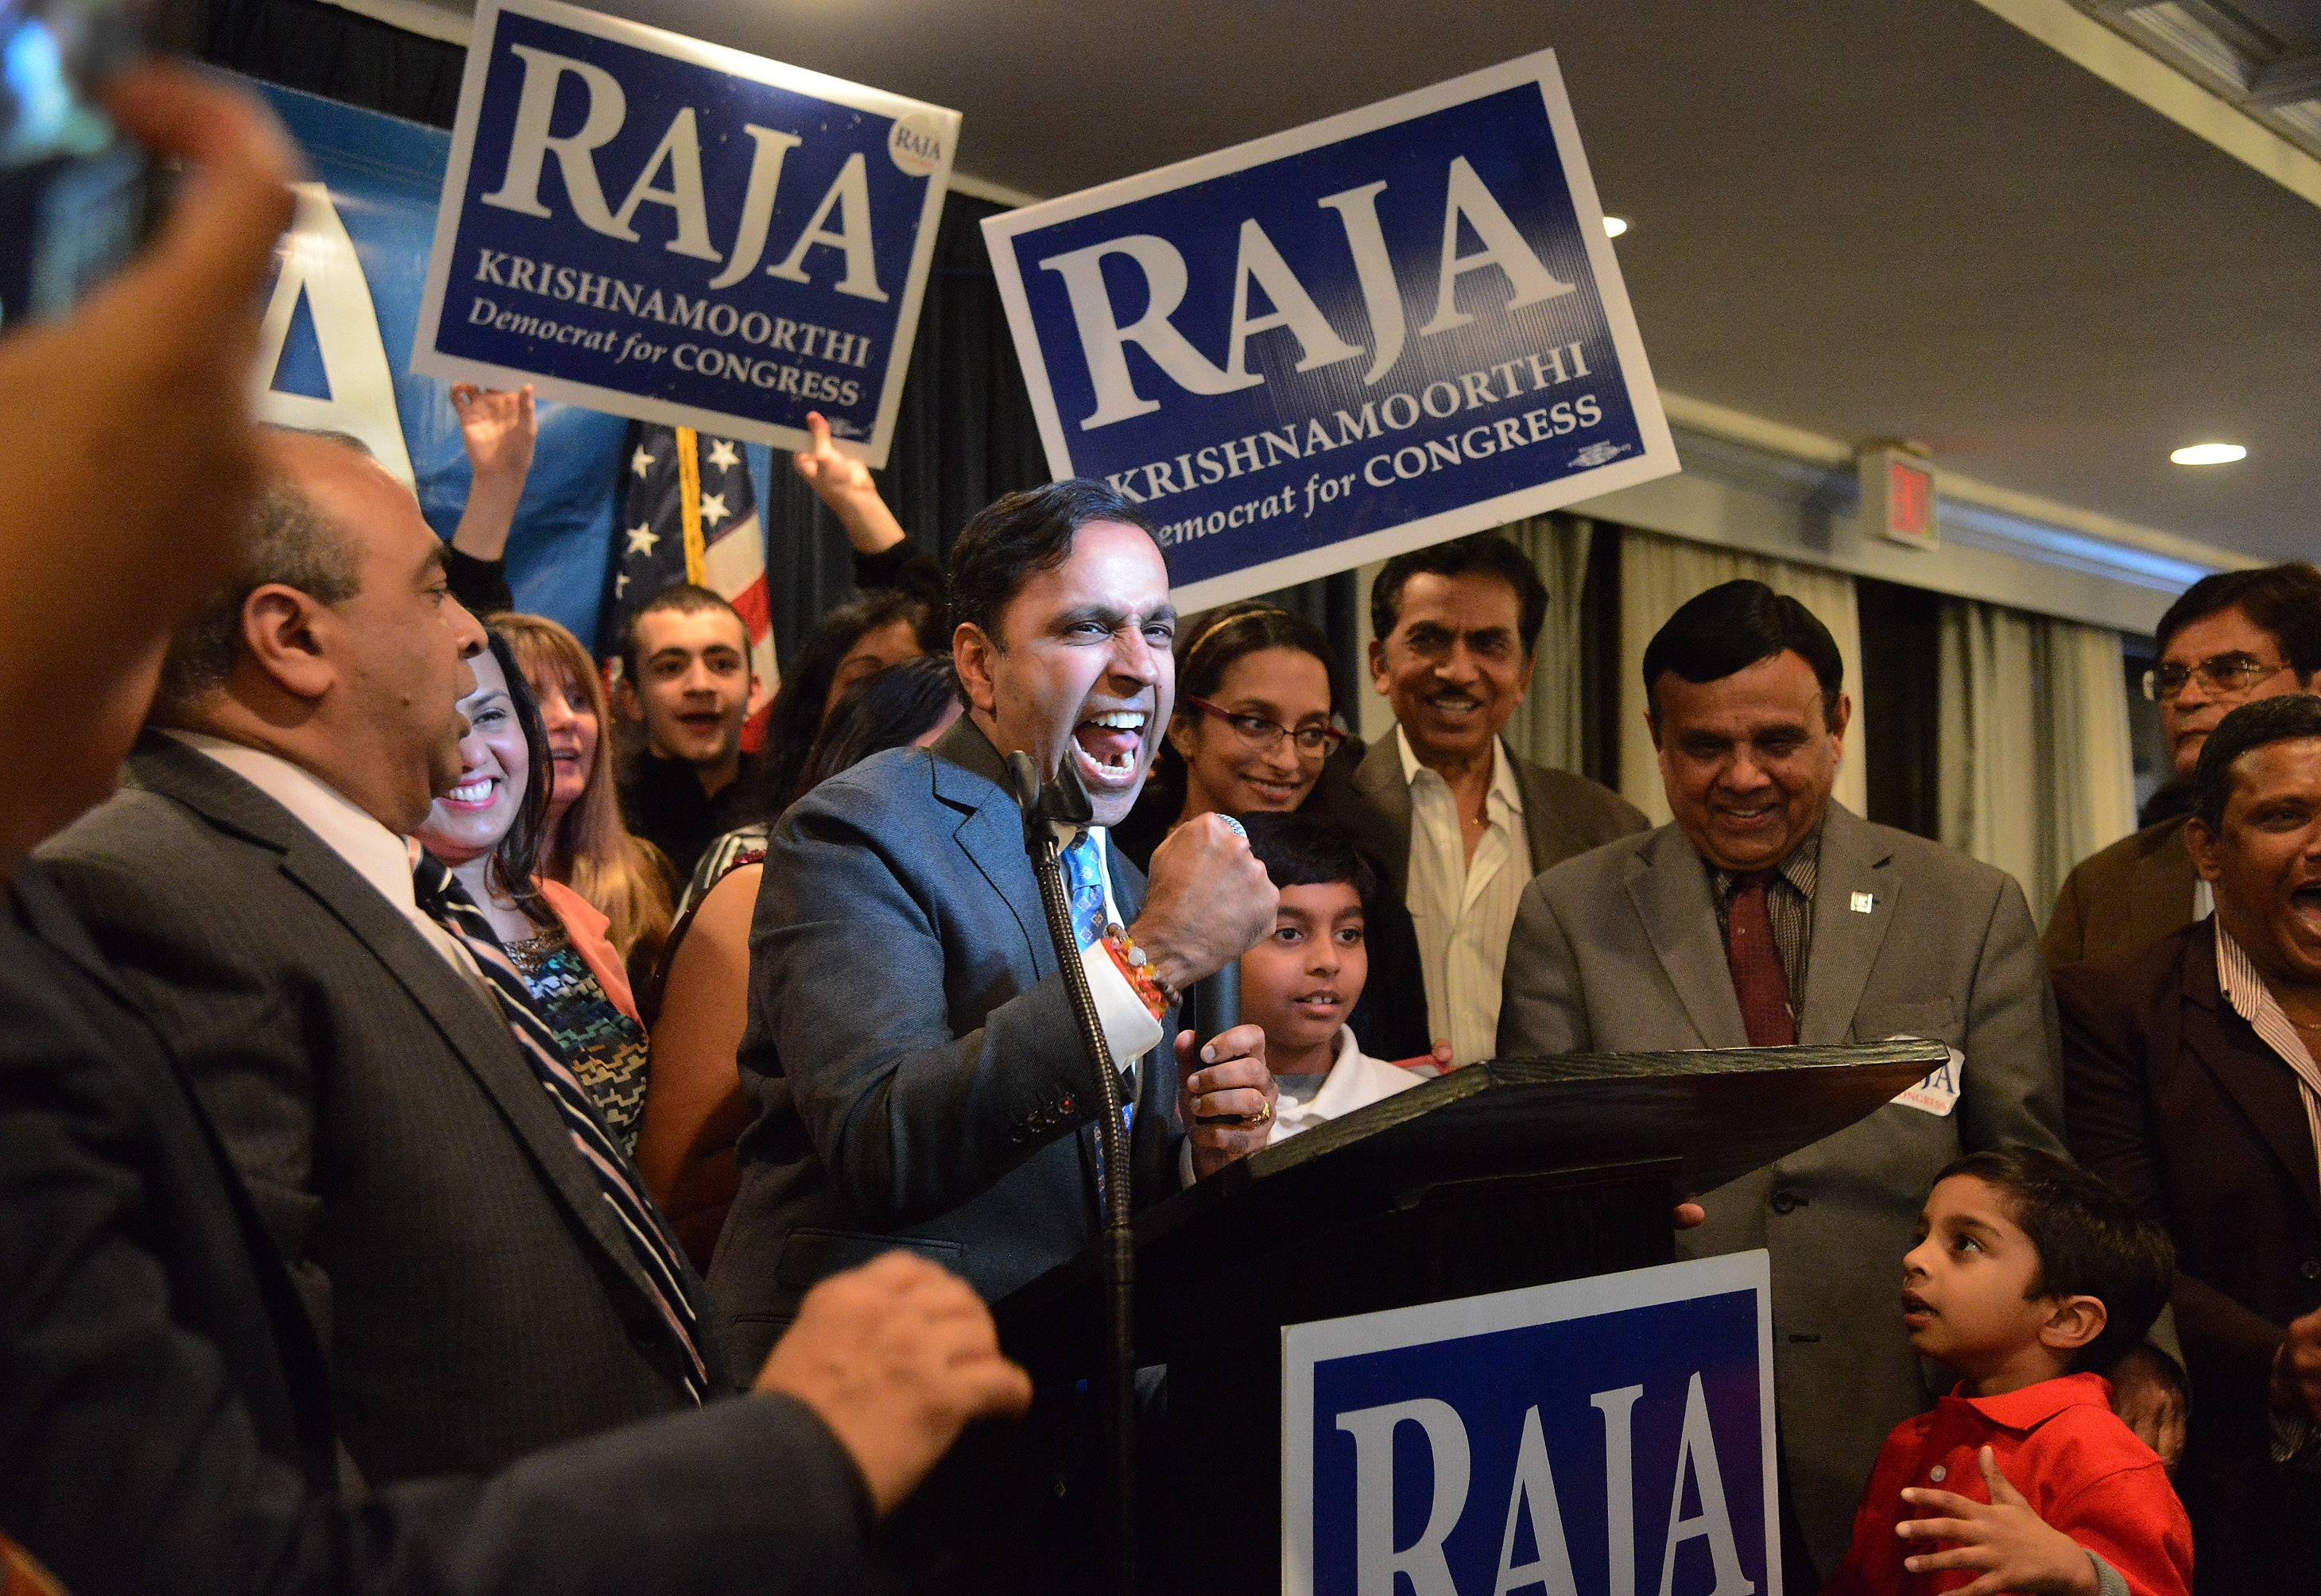 Raja Krishnamoorthi, Democratic primary candidate for the 8th congressional district, accepts victory Tuesday.